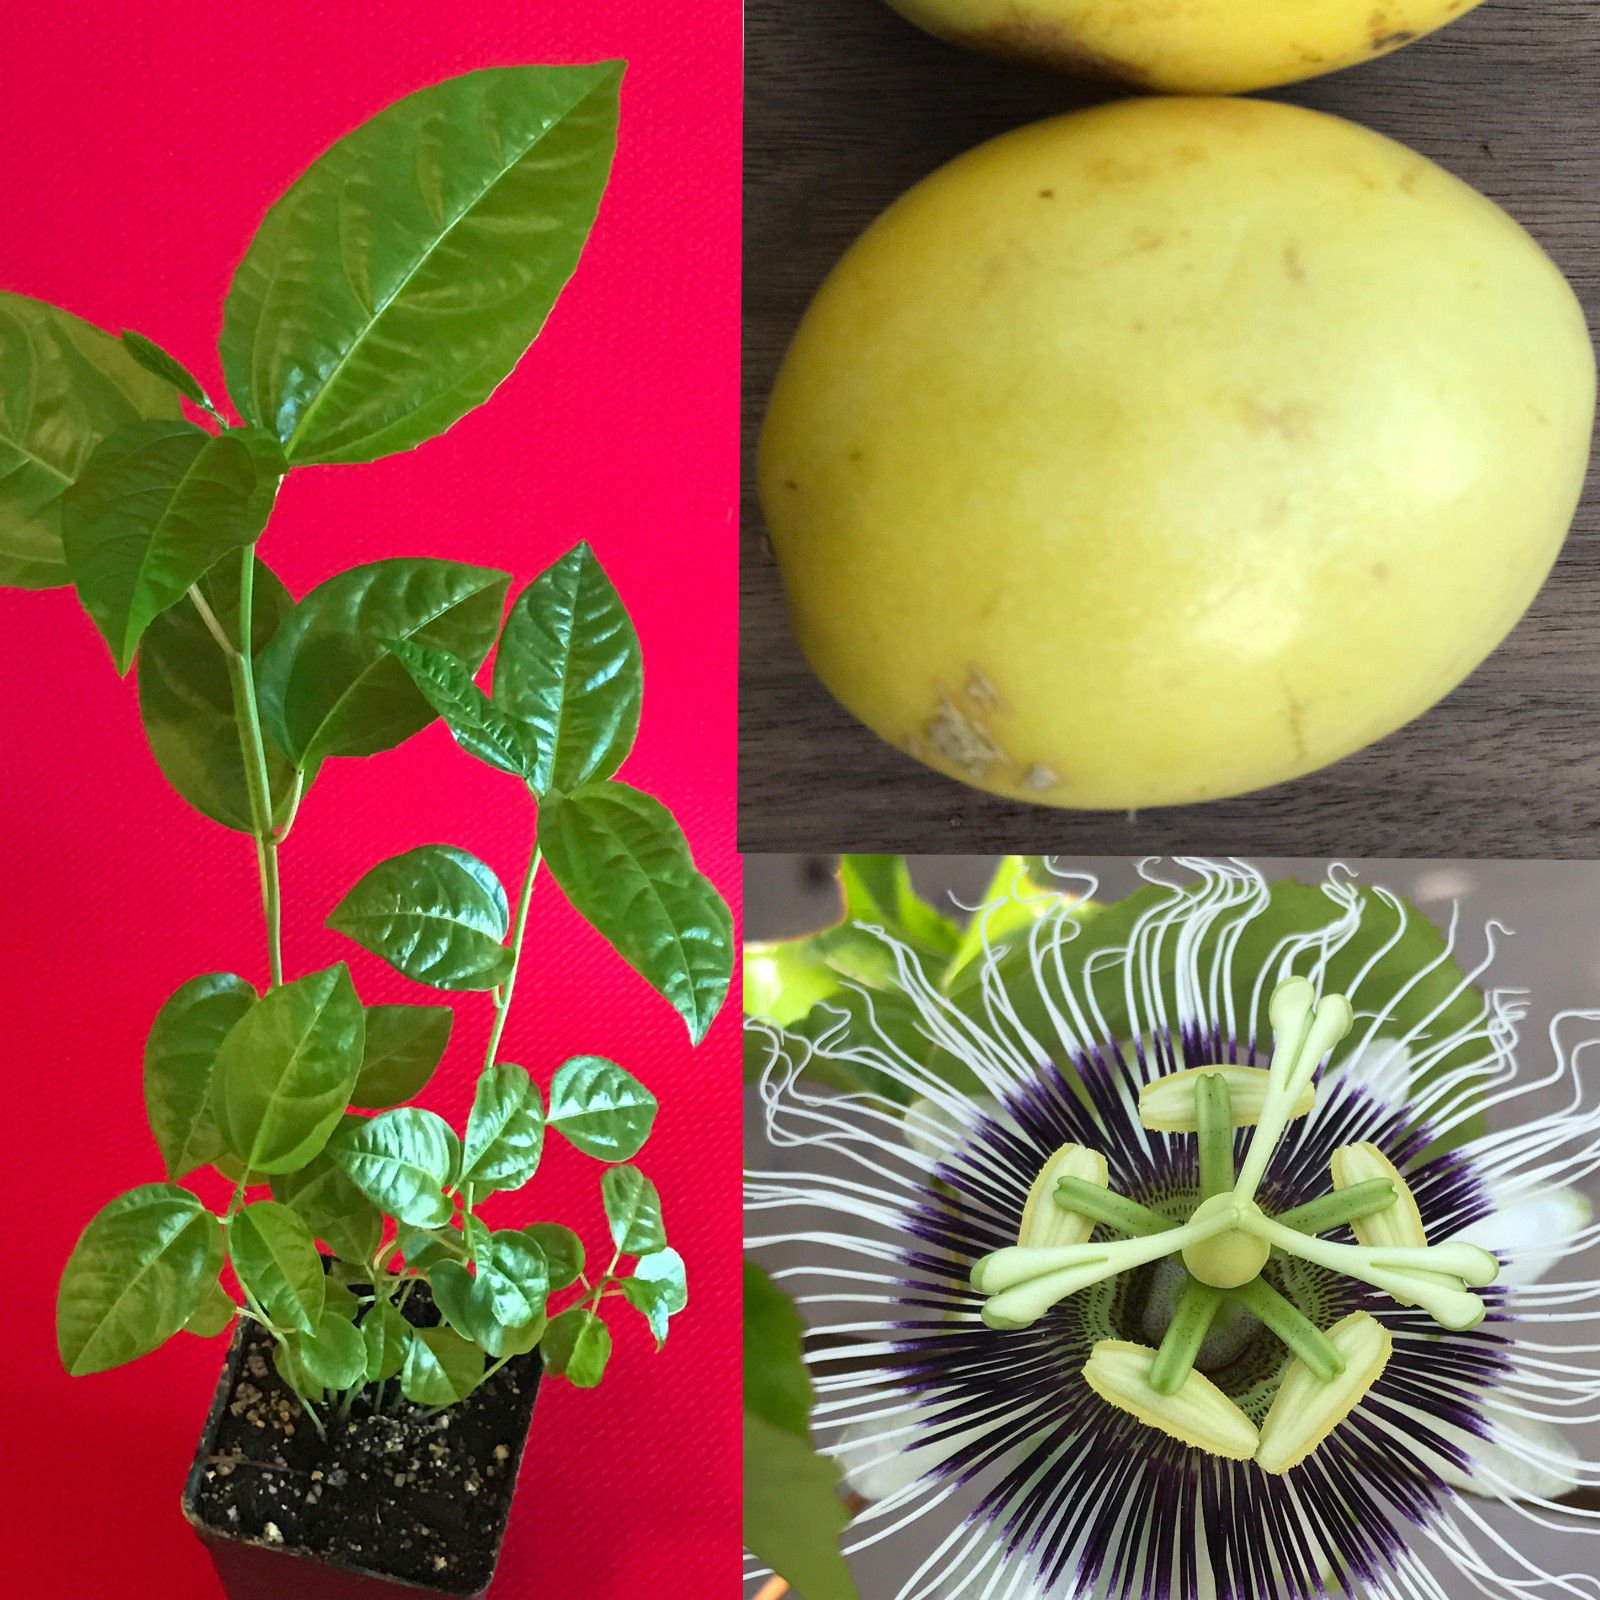 New and Healthy Yellow Passion Fruit Passiflora Edulis Potted Starter PLANT Tropical Vine